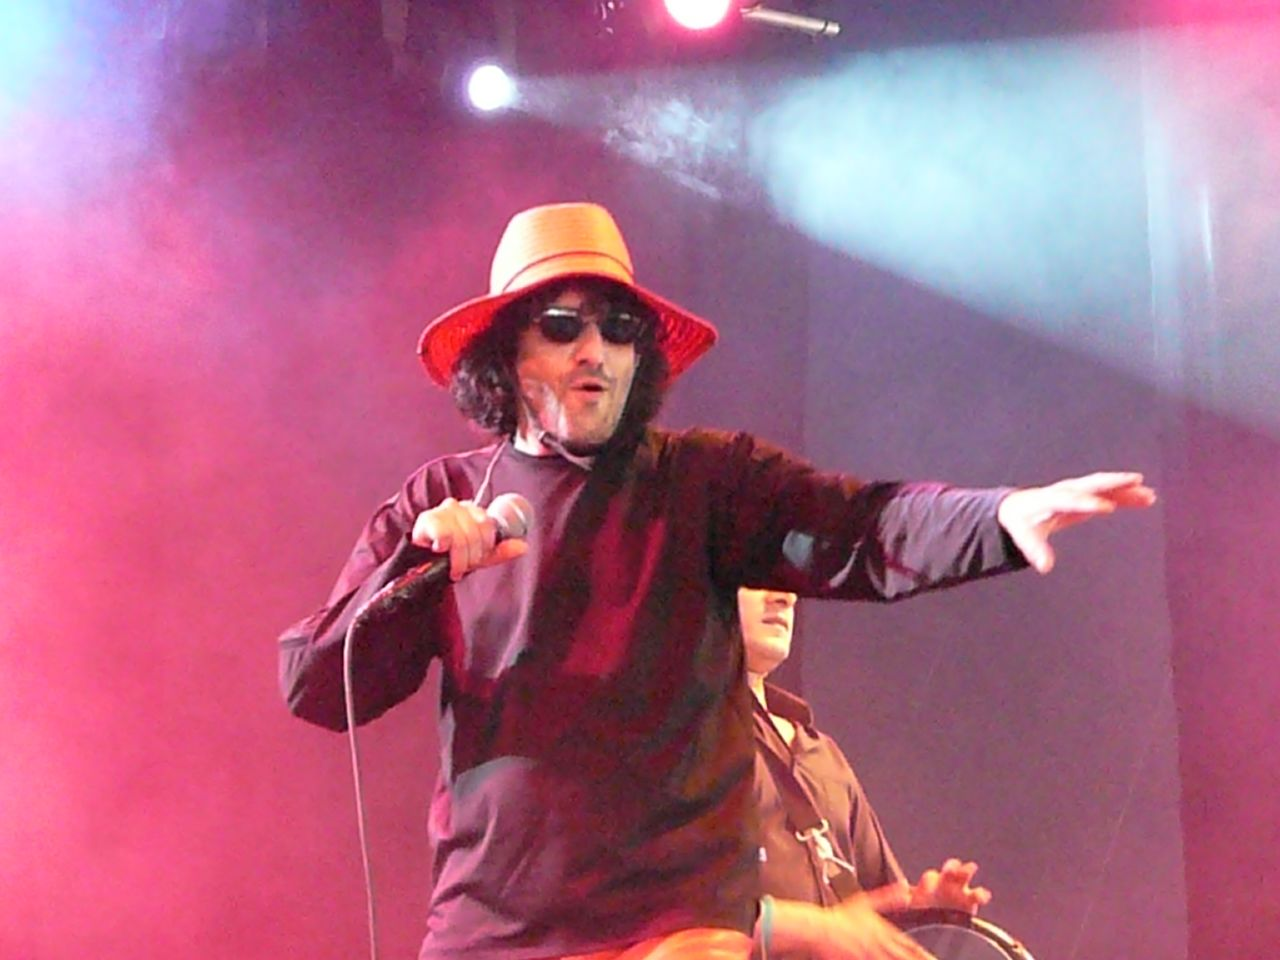 https://fr.wikipedia.org/wiki/Rachid_Taha#/media/File:RachidTaha2007Belgium.jpg